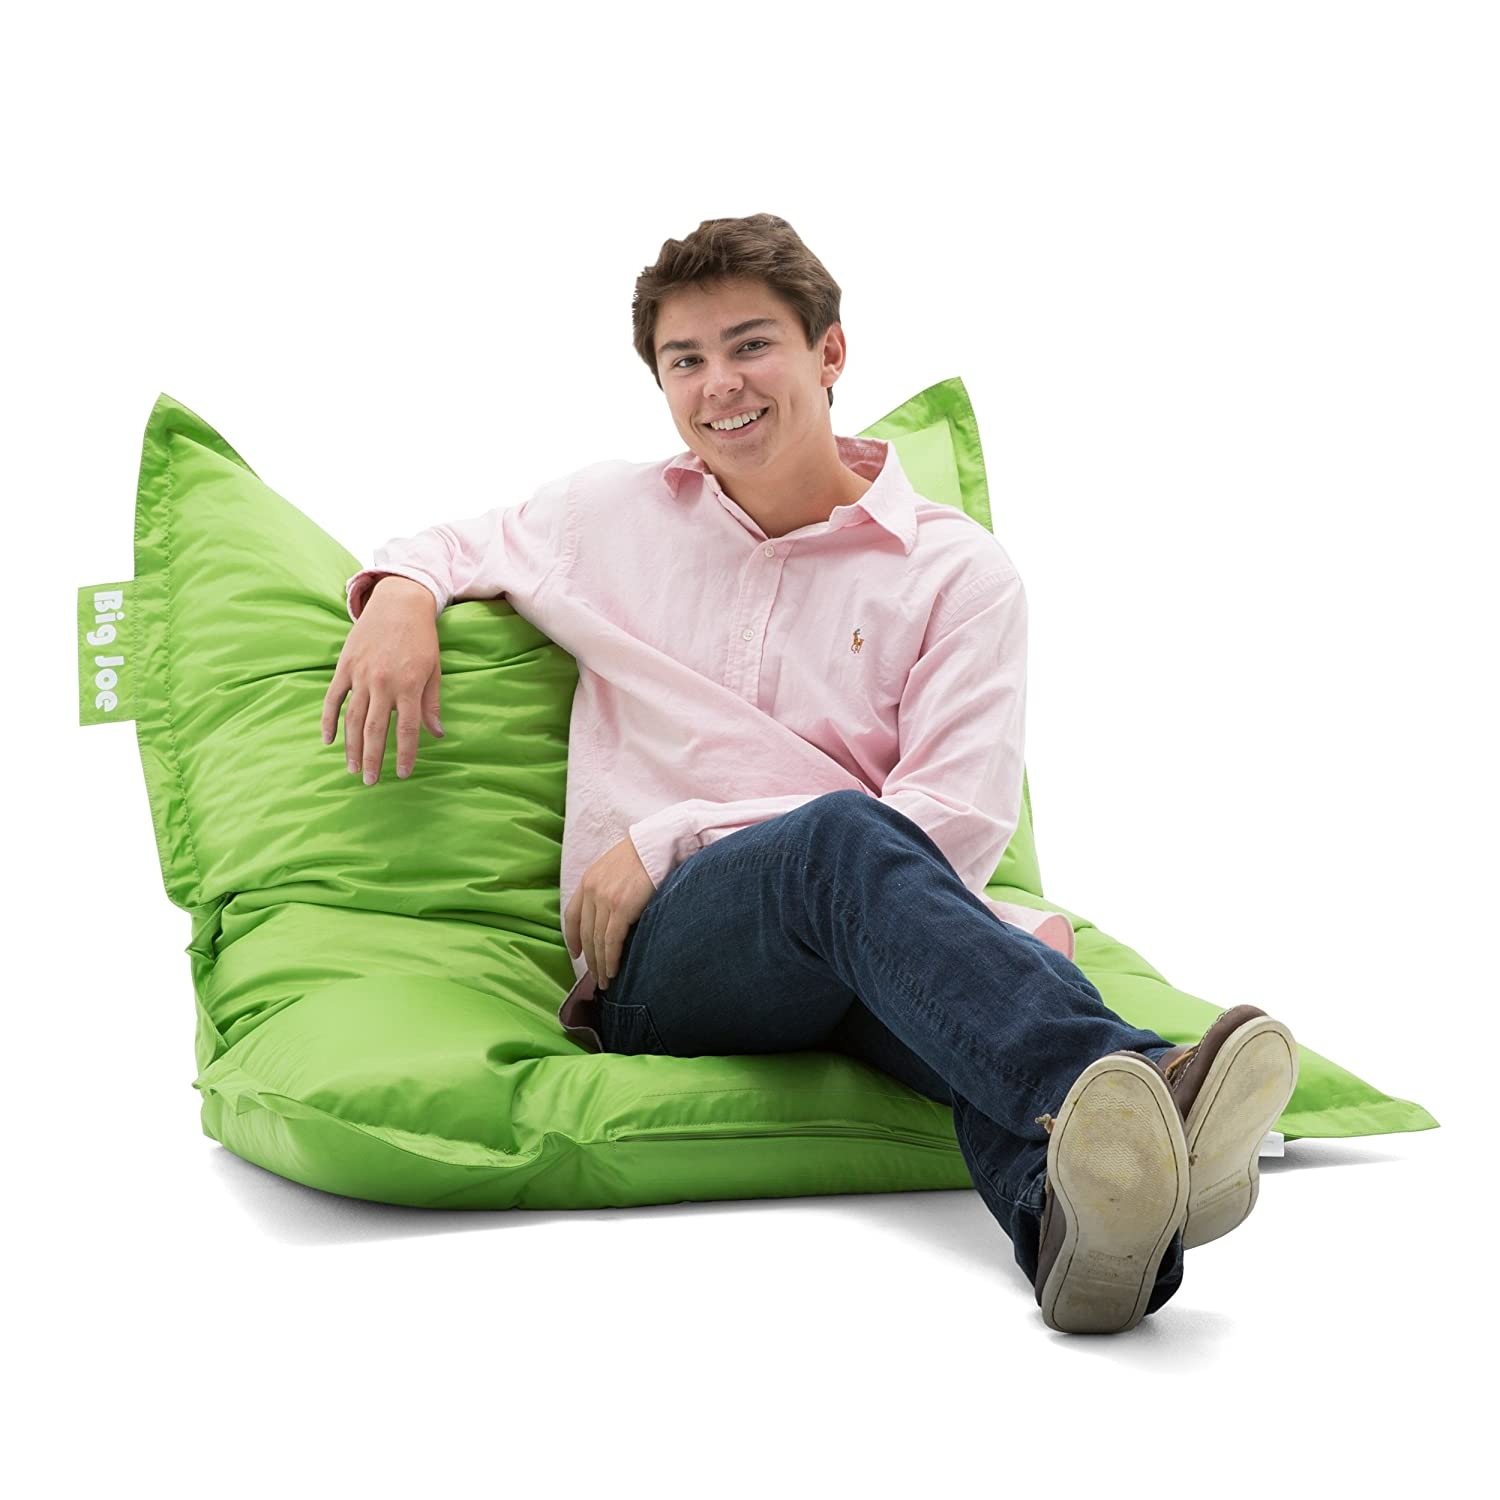 Bean bag chairs for adults - Big Joe Original Bean Bag Chair Spicy Lime